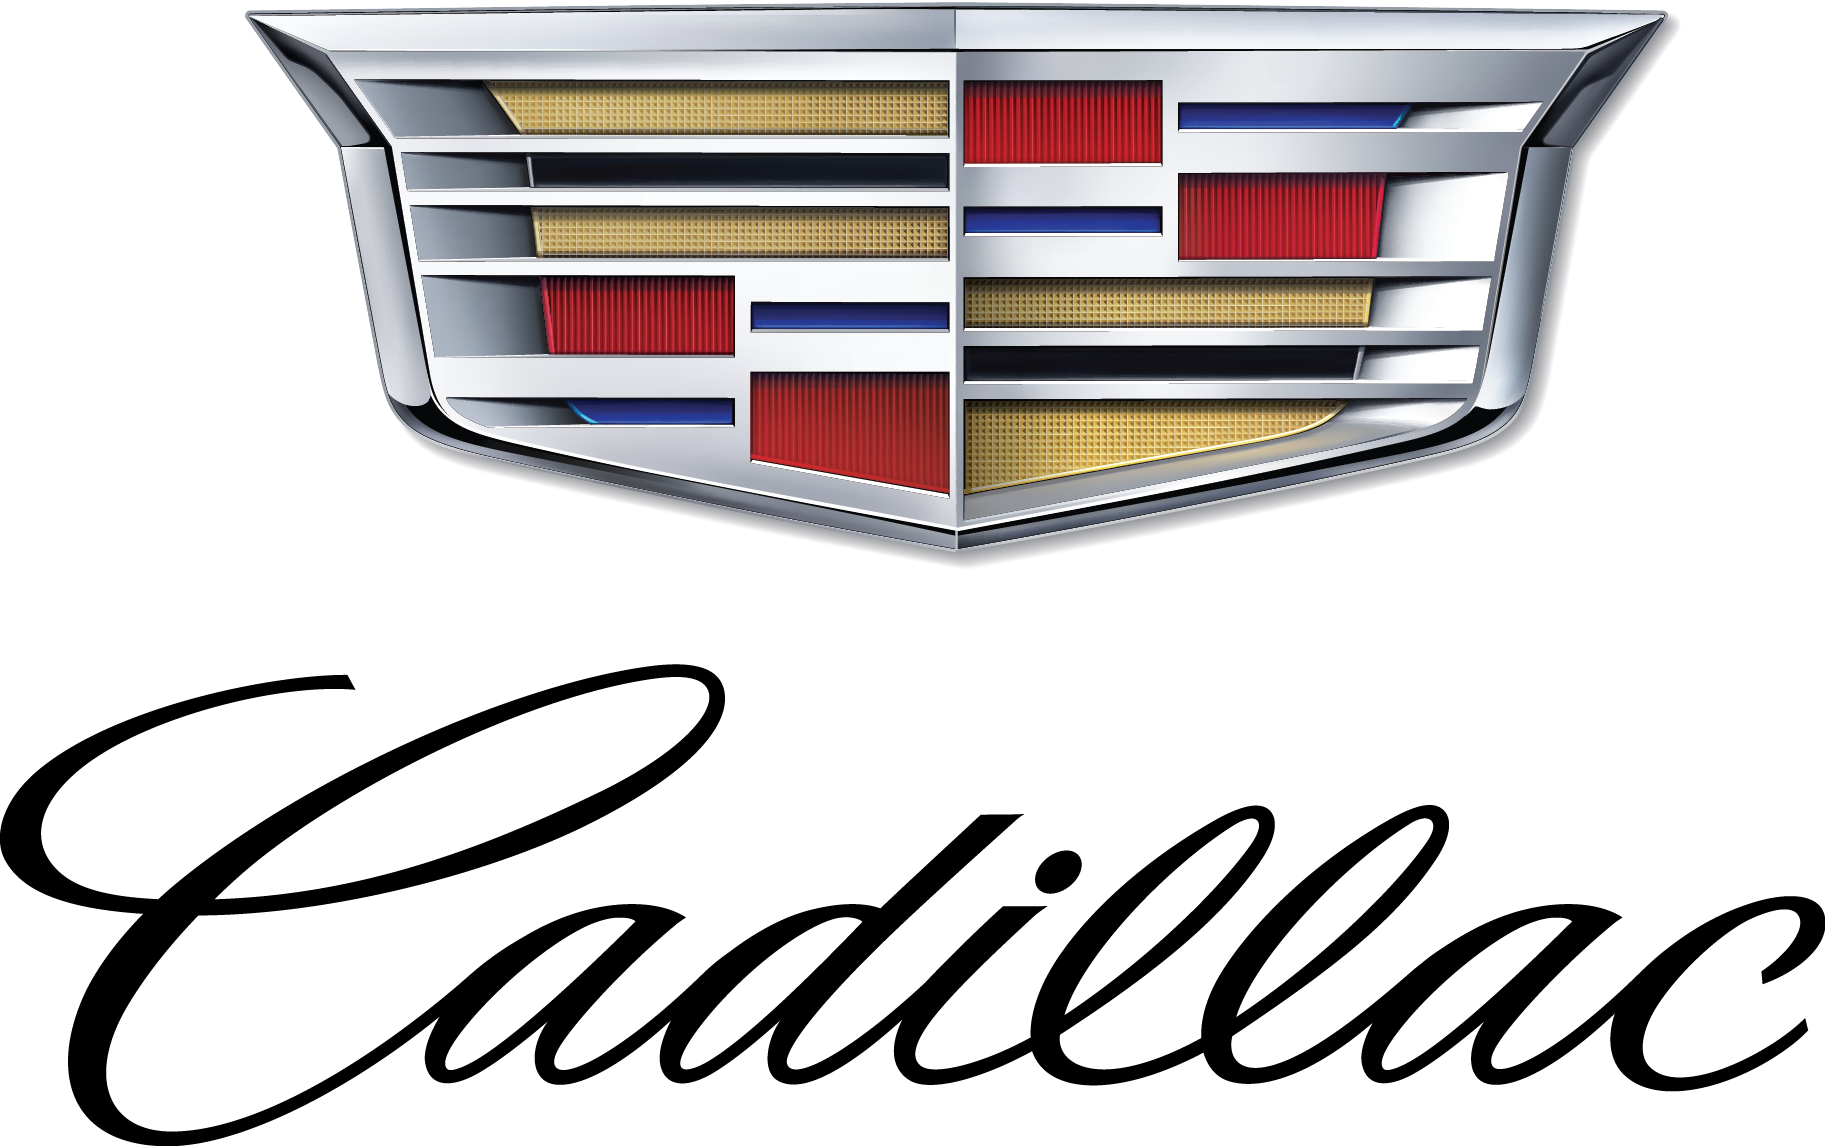 Photo 08 in addition 1991 96 Chevrolet Capriceimpala Ss besides A Beautiful Collection Of Car Logos Car Wallpapers Hd besides Popular Car Symbols besides 2015 Ford F 150 Appearance Guide Whats Your Favorite Poll. on new gm certified logo